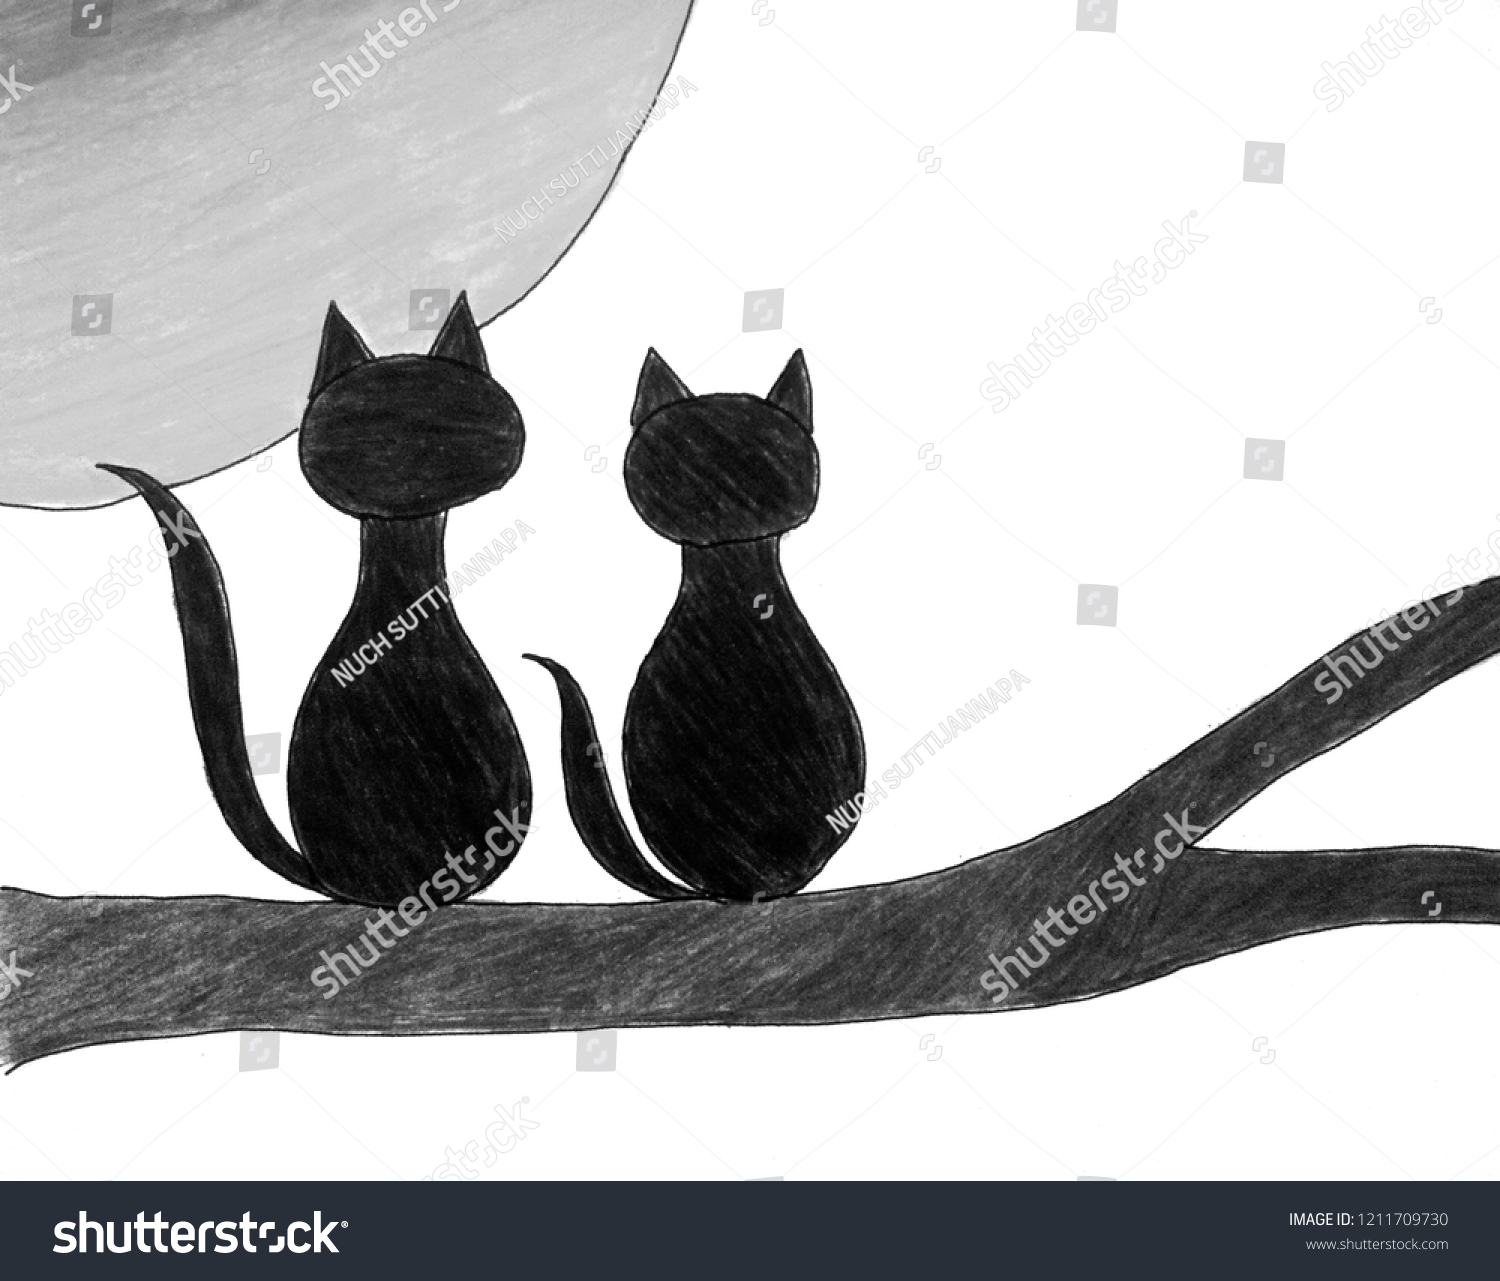 Full Moon Drawing Black And White Hand Drawing 2 Black Cats Sitting Stock Illustration Royalty